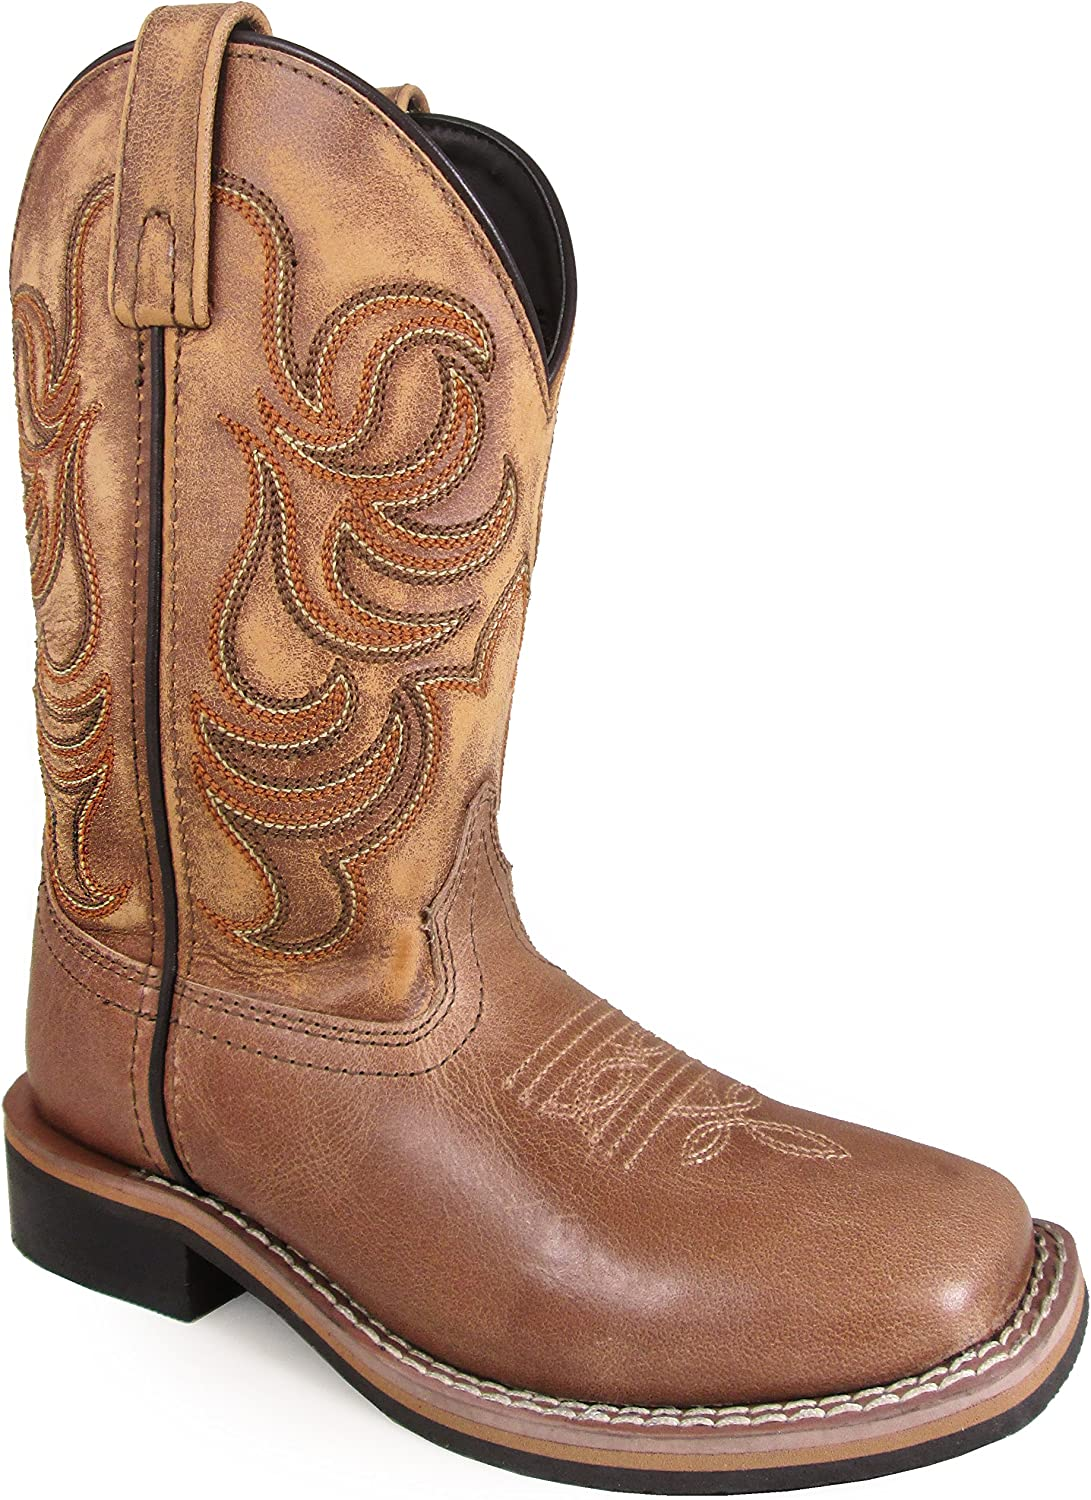 Smoky Mountain Western Boots Boys Leroy Square Toe 2 Child Tan 3723